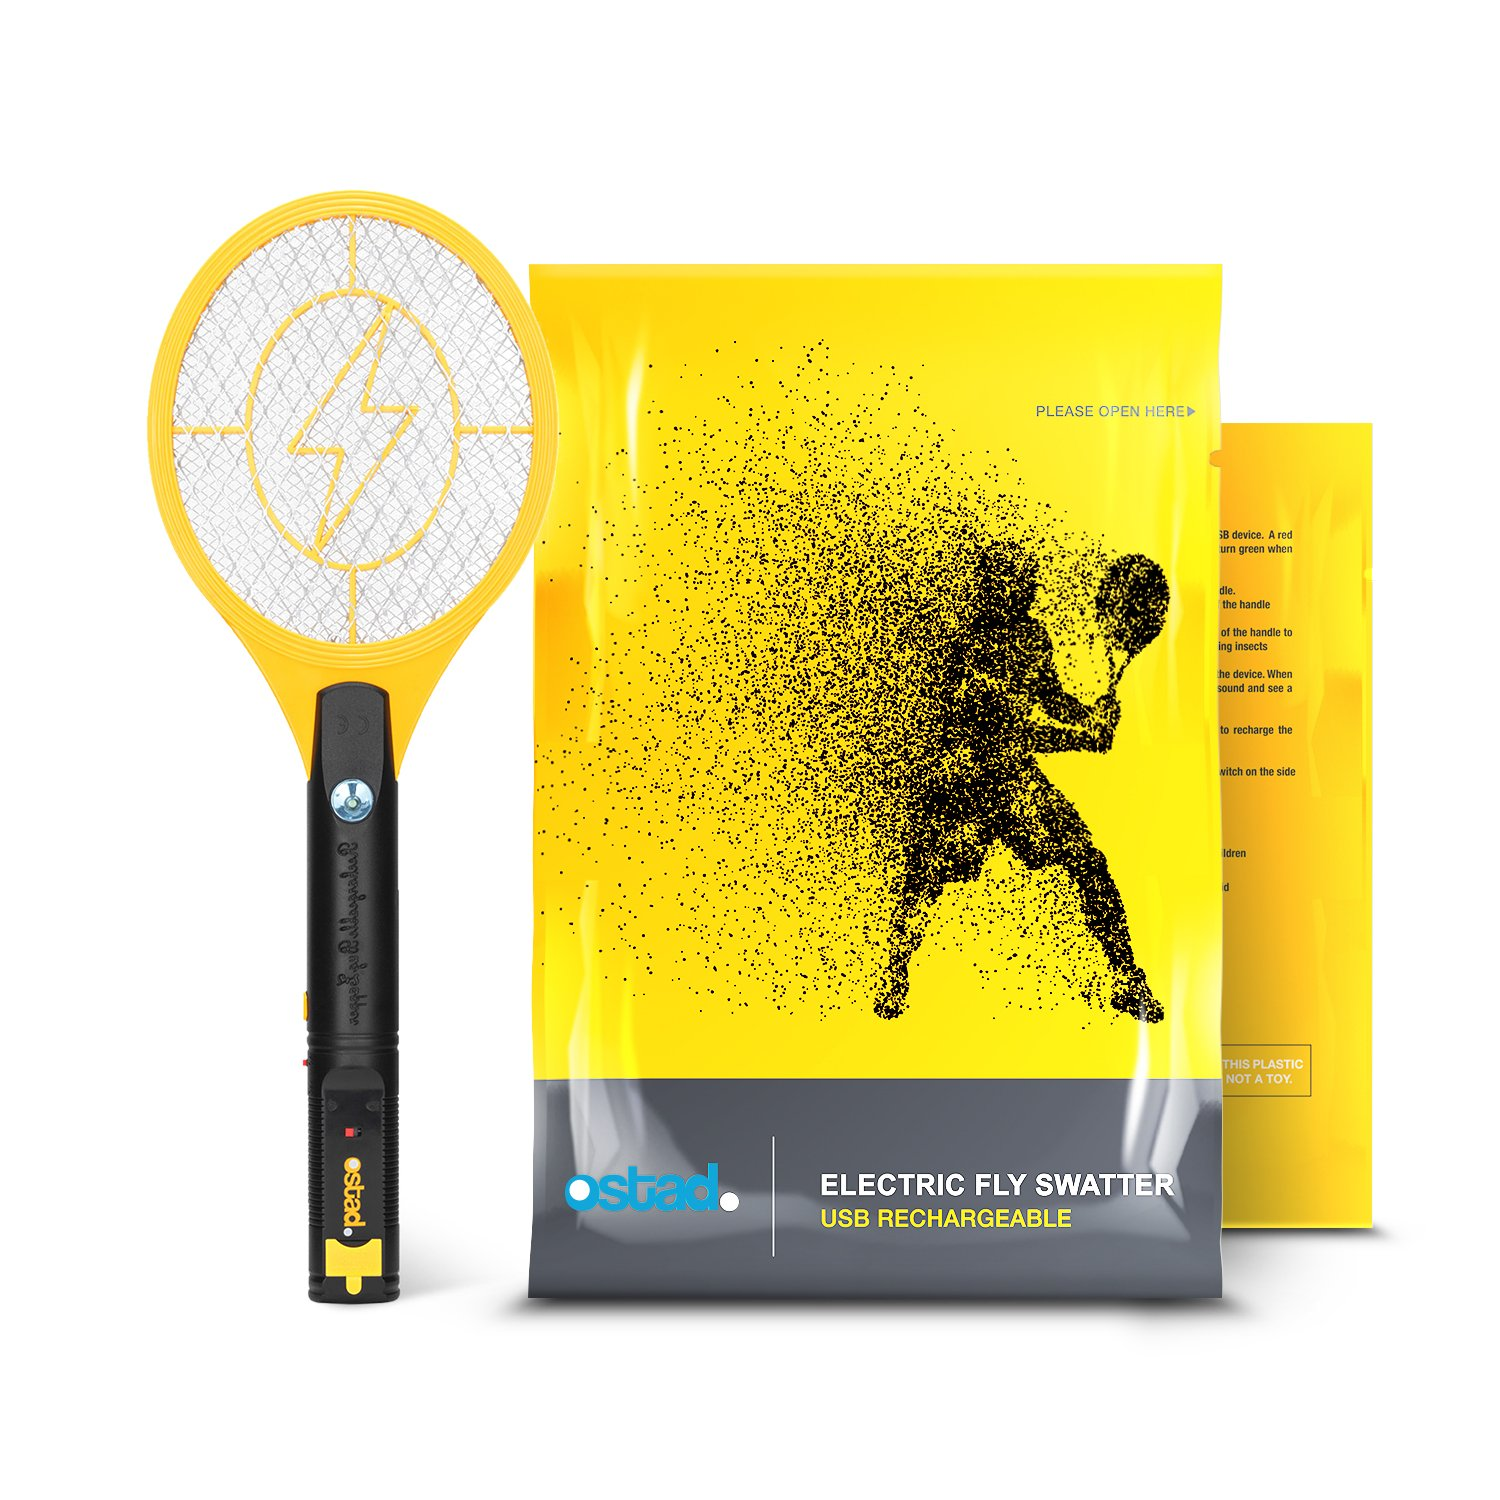 Electric Fly Swatter, Mini Bug Zapper Rechargeable for Mosquito, Flies Killer for Pest Control Indoor and Outdoor, 3800 Volt Power and Triple-Layer Safety Mesh, USB Charging, Bug Zapper Racket Insect